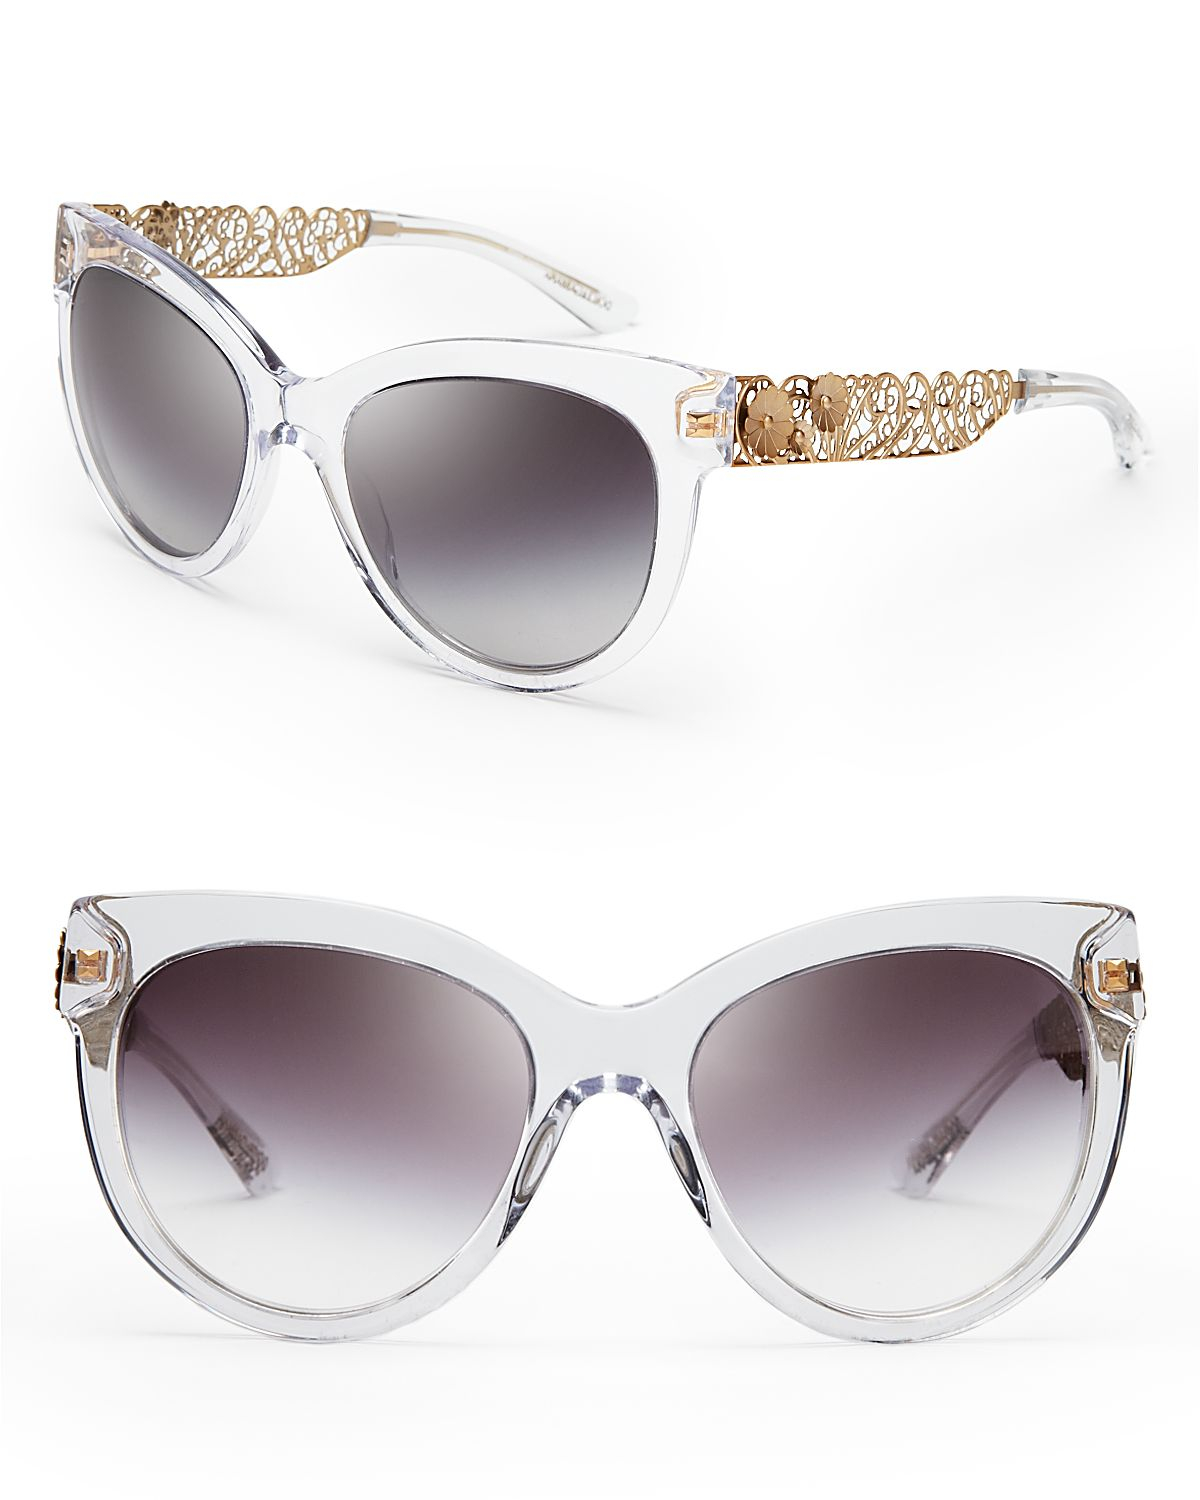 Dolce Gabbana Filigree Sunglasses  dolce gabbana cat eye fl filigree sunglasses in white lyst